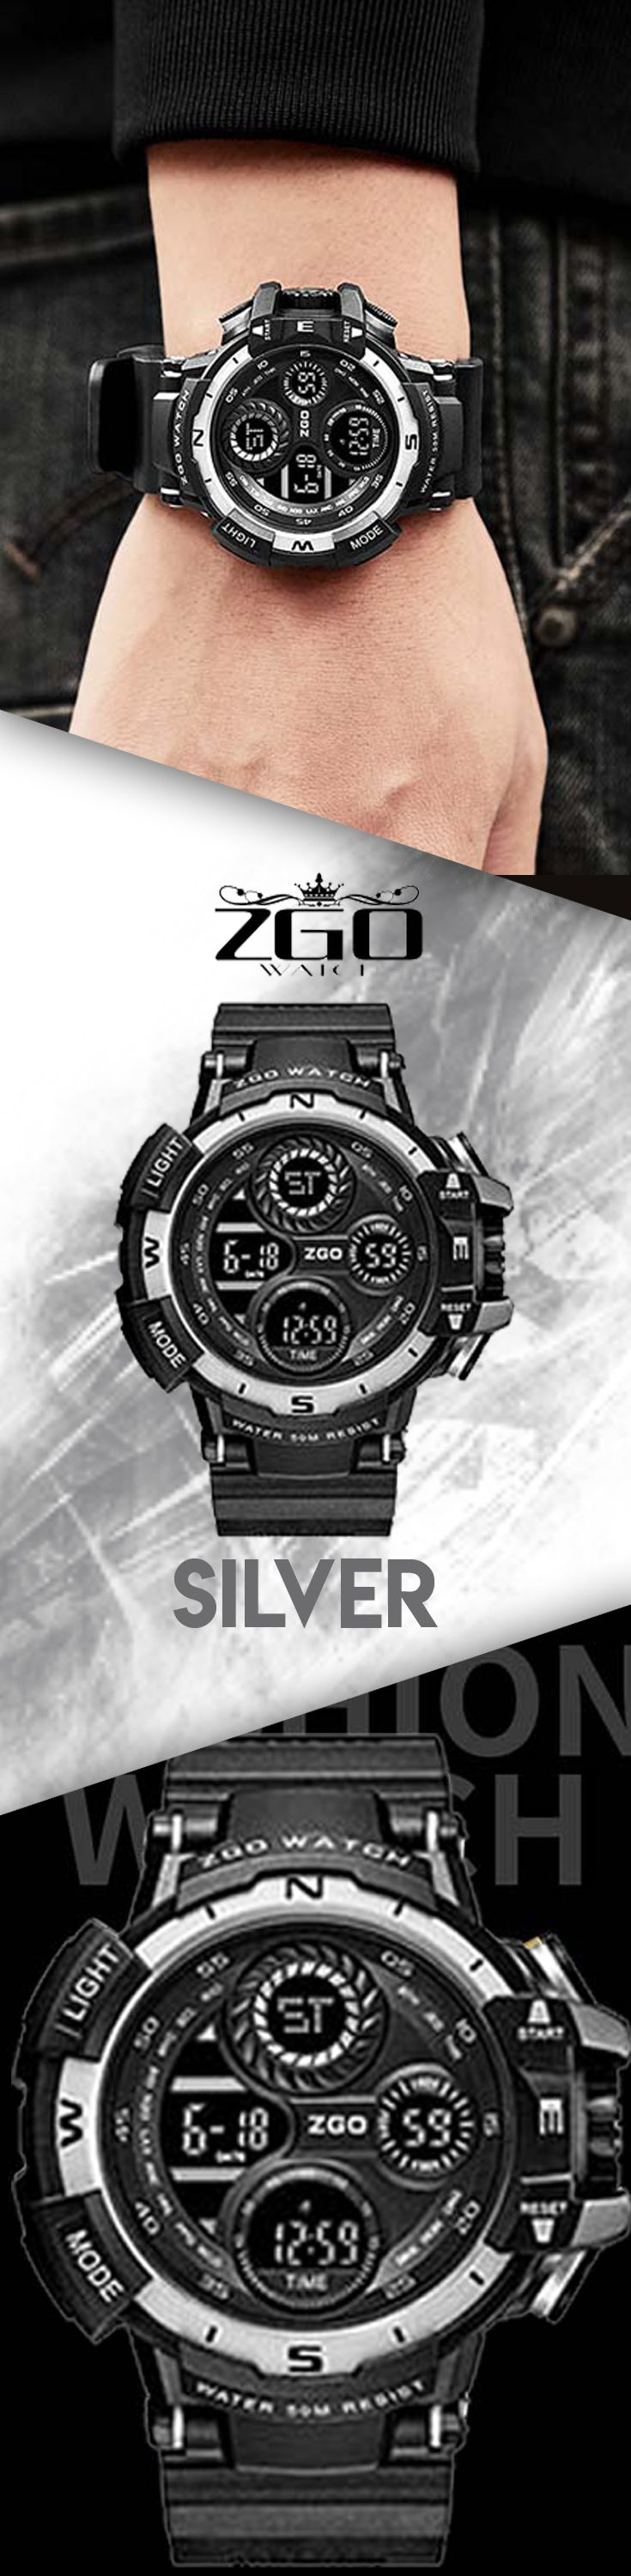 Men's outdoor sport watch - ZGO military waterproof watches - Men's top designer brand fashion style affordable accessories #watches #waterproof #menstyle #menaccessories